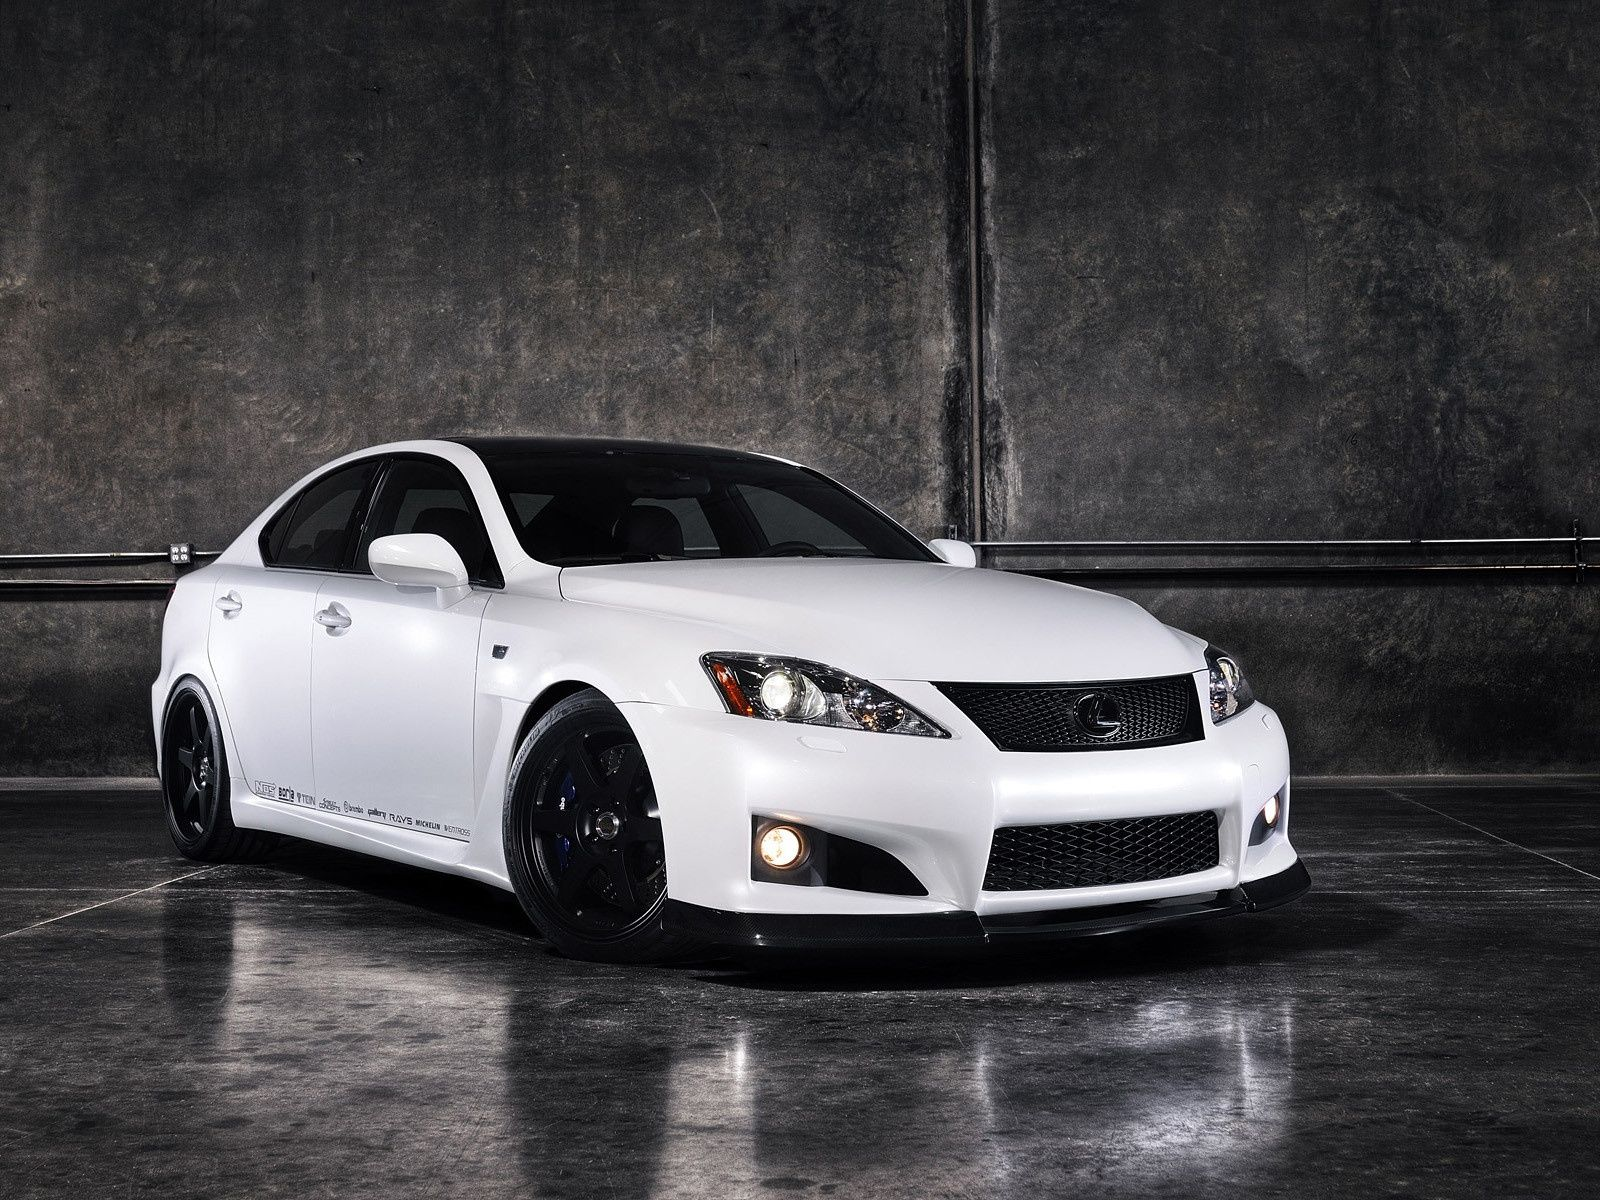 I WILL have a Lexus IS 250 one day!! Hopefully soon